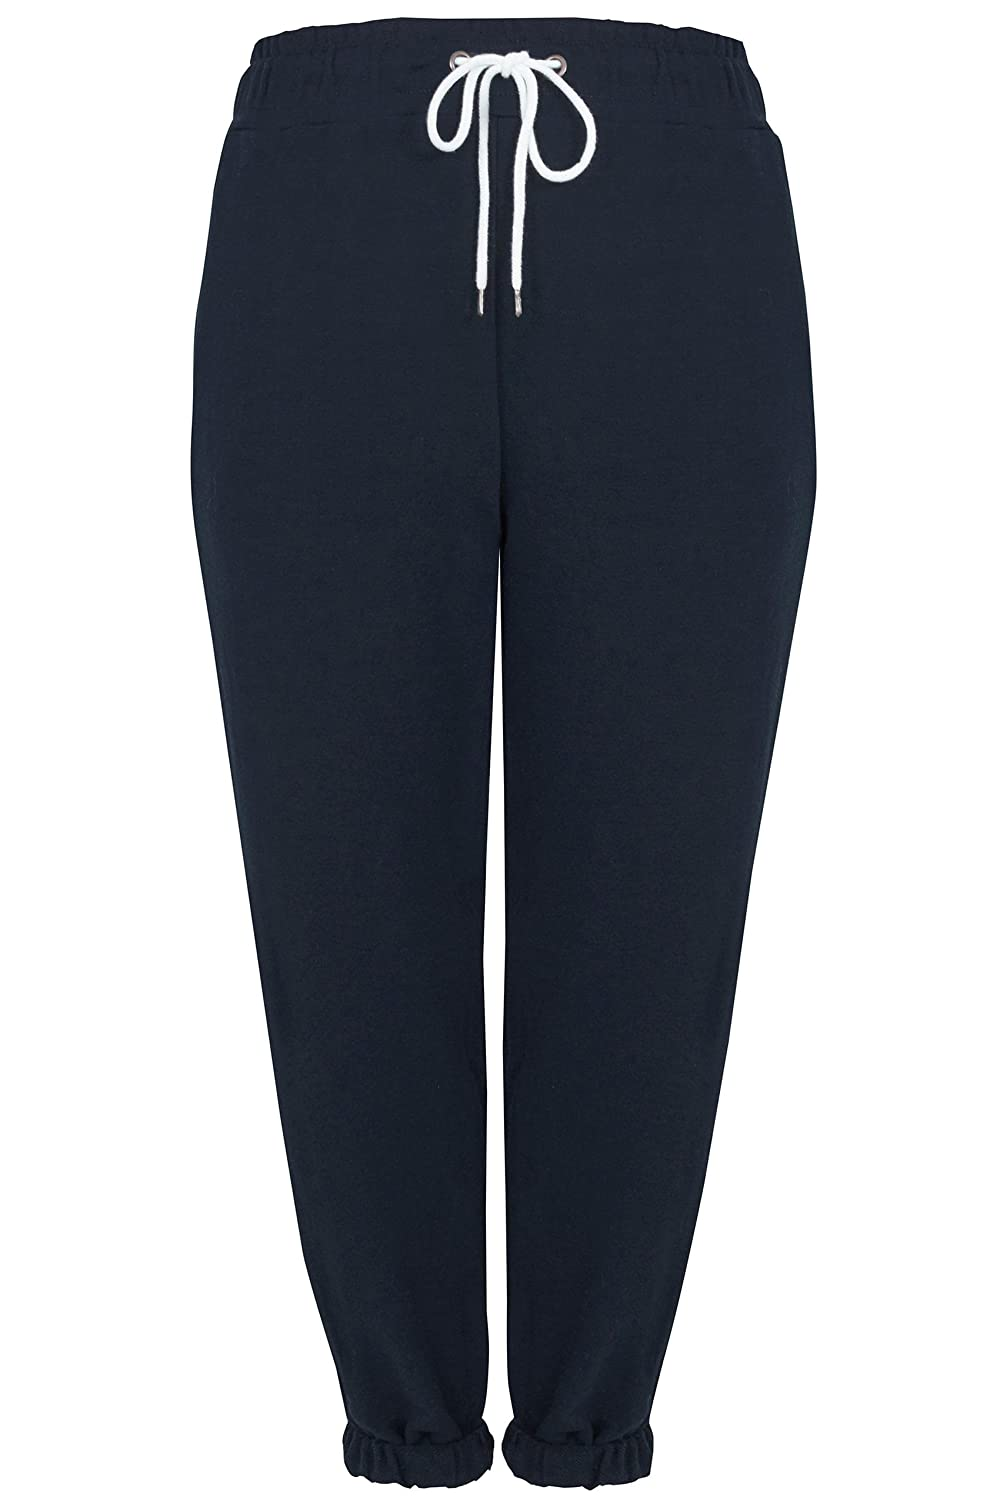 Yours Clothing Women's Plus Size Joggers Elasticated Cuffs